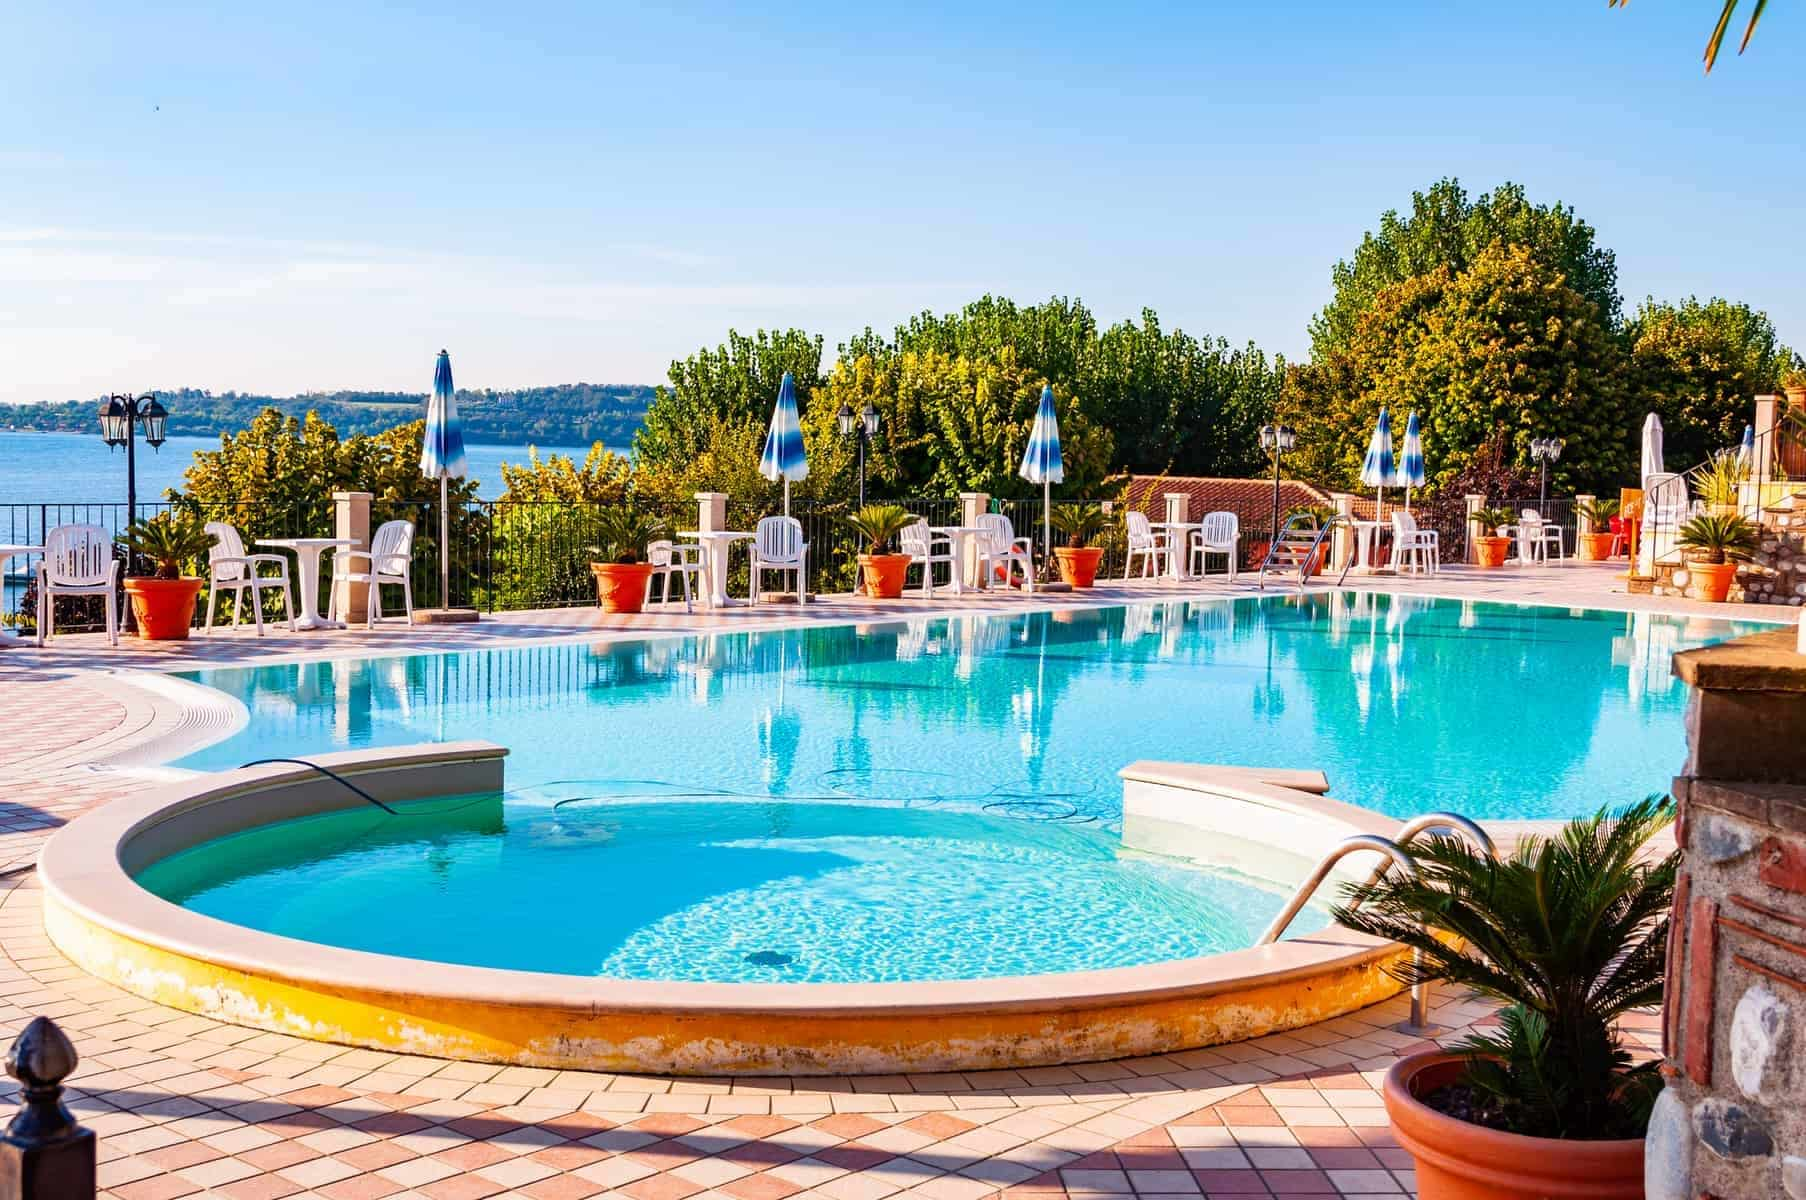 Camping La Ca, Garda Lake, Lombardy, Italy - September 12, 2019: Outdoor pool with vibrant crystal water, parasols and deck chairs located on the coast of Garda lake in amazing La Ca camping in Italy